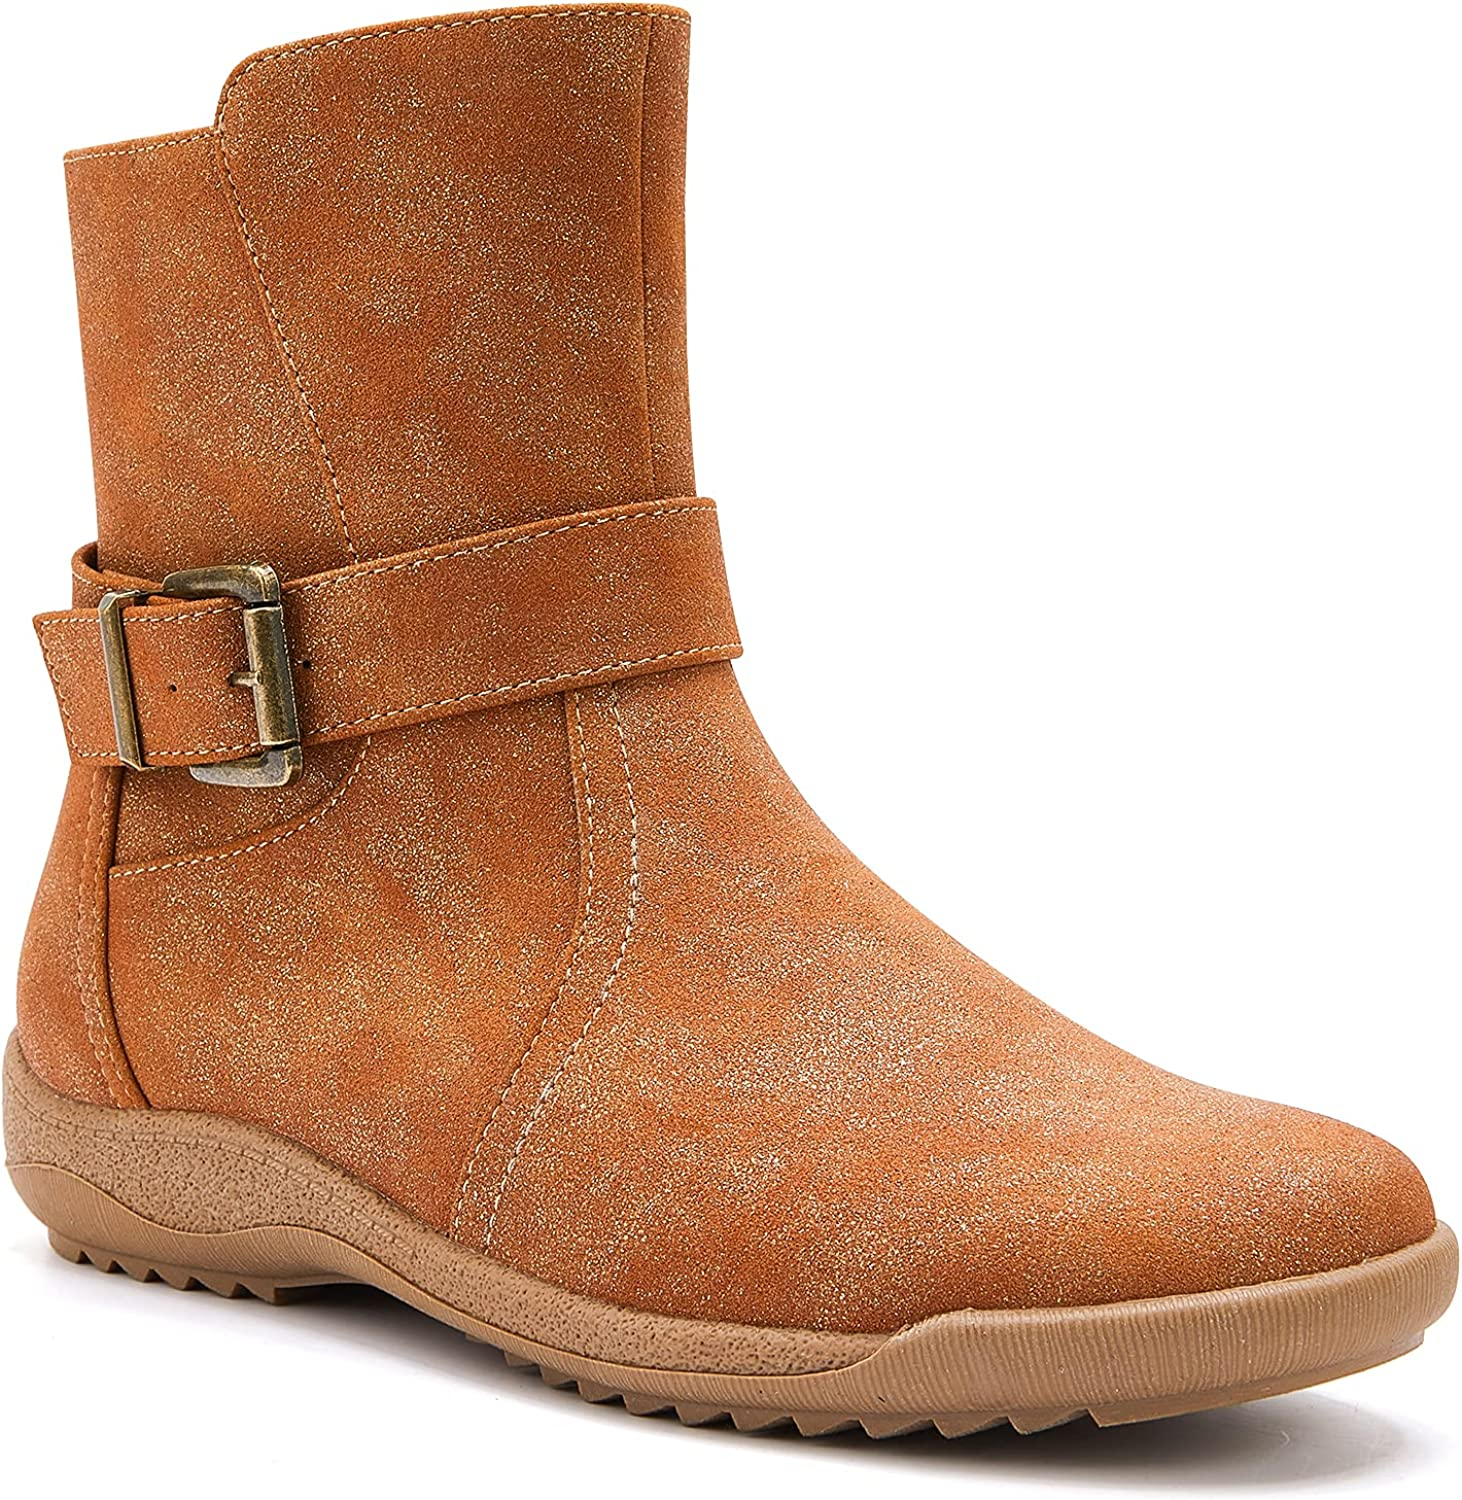 TINSTREE Women's Casual Flat Heel Side Zipper Slouch Mid Calf Booties Anti-Slip Buckle Slouchy Ankle Boots Shoes